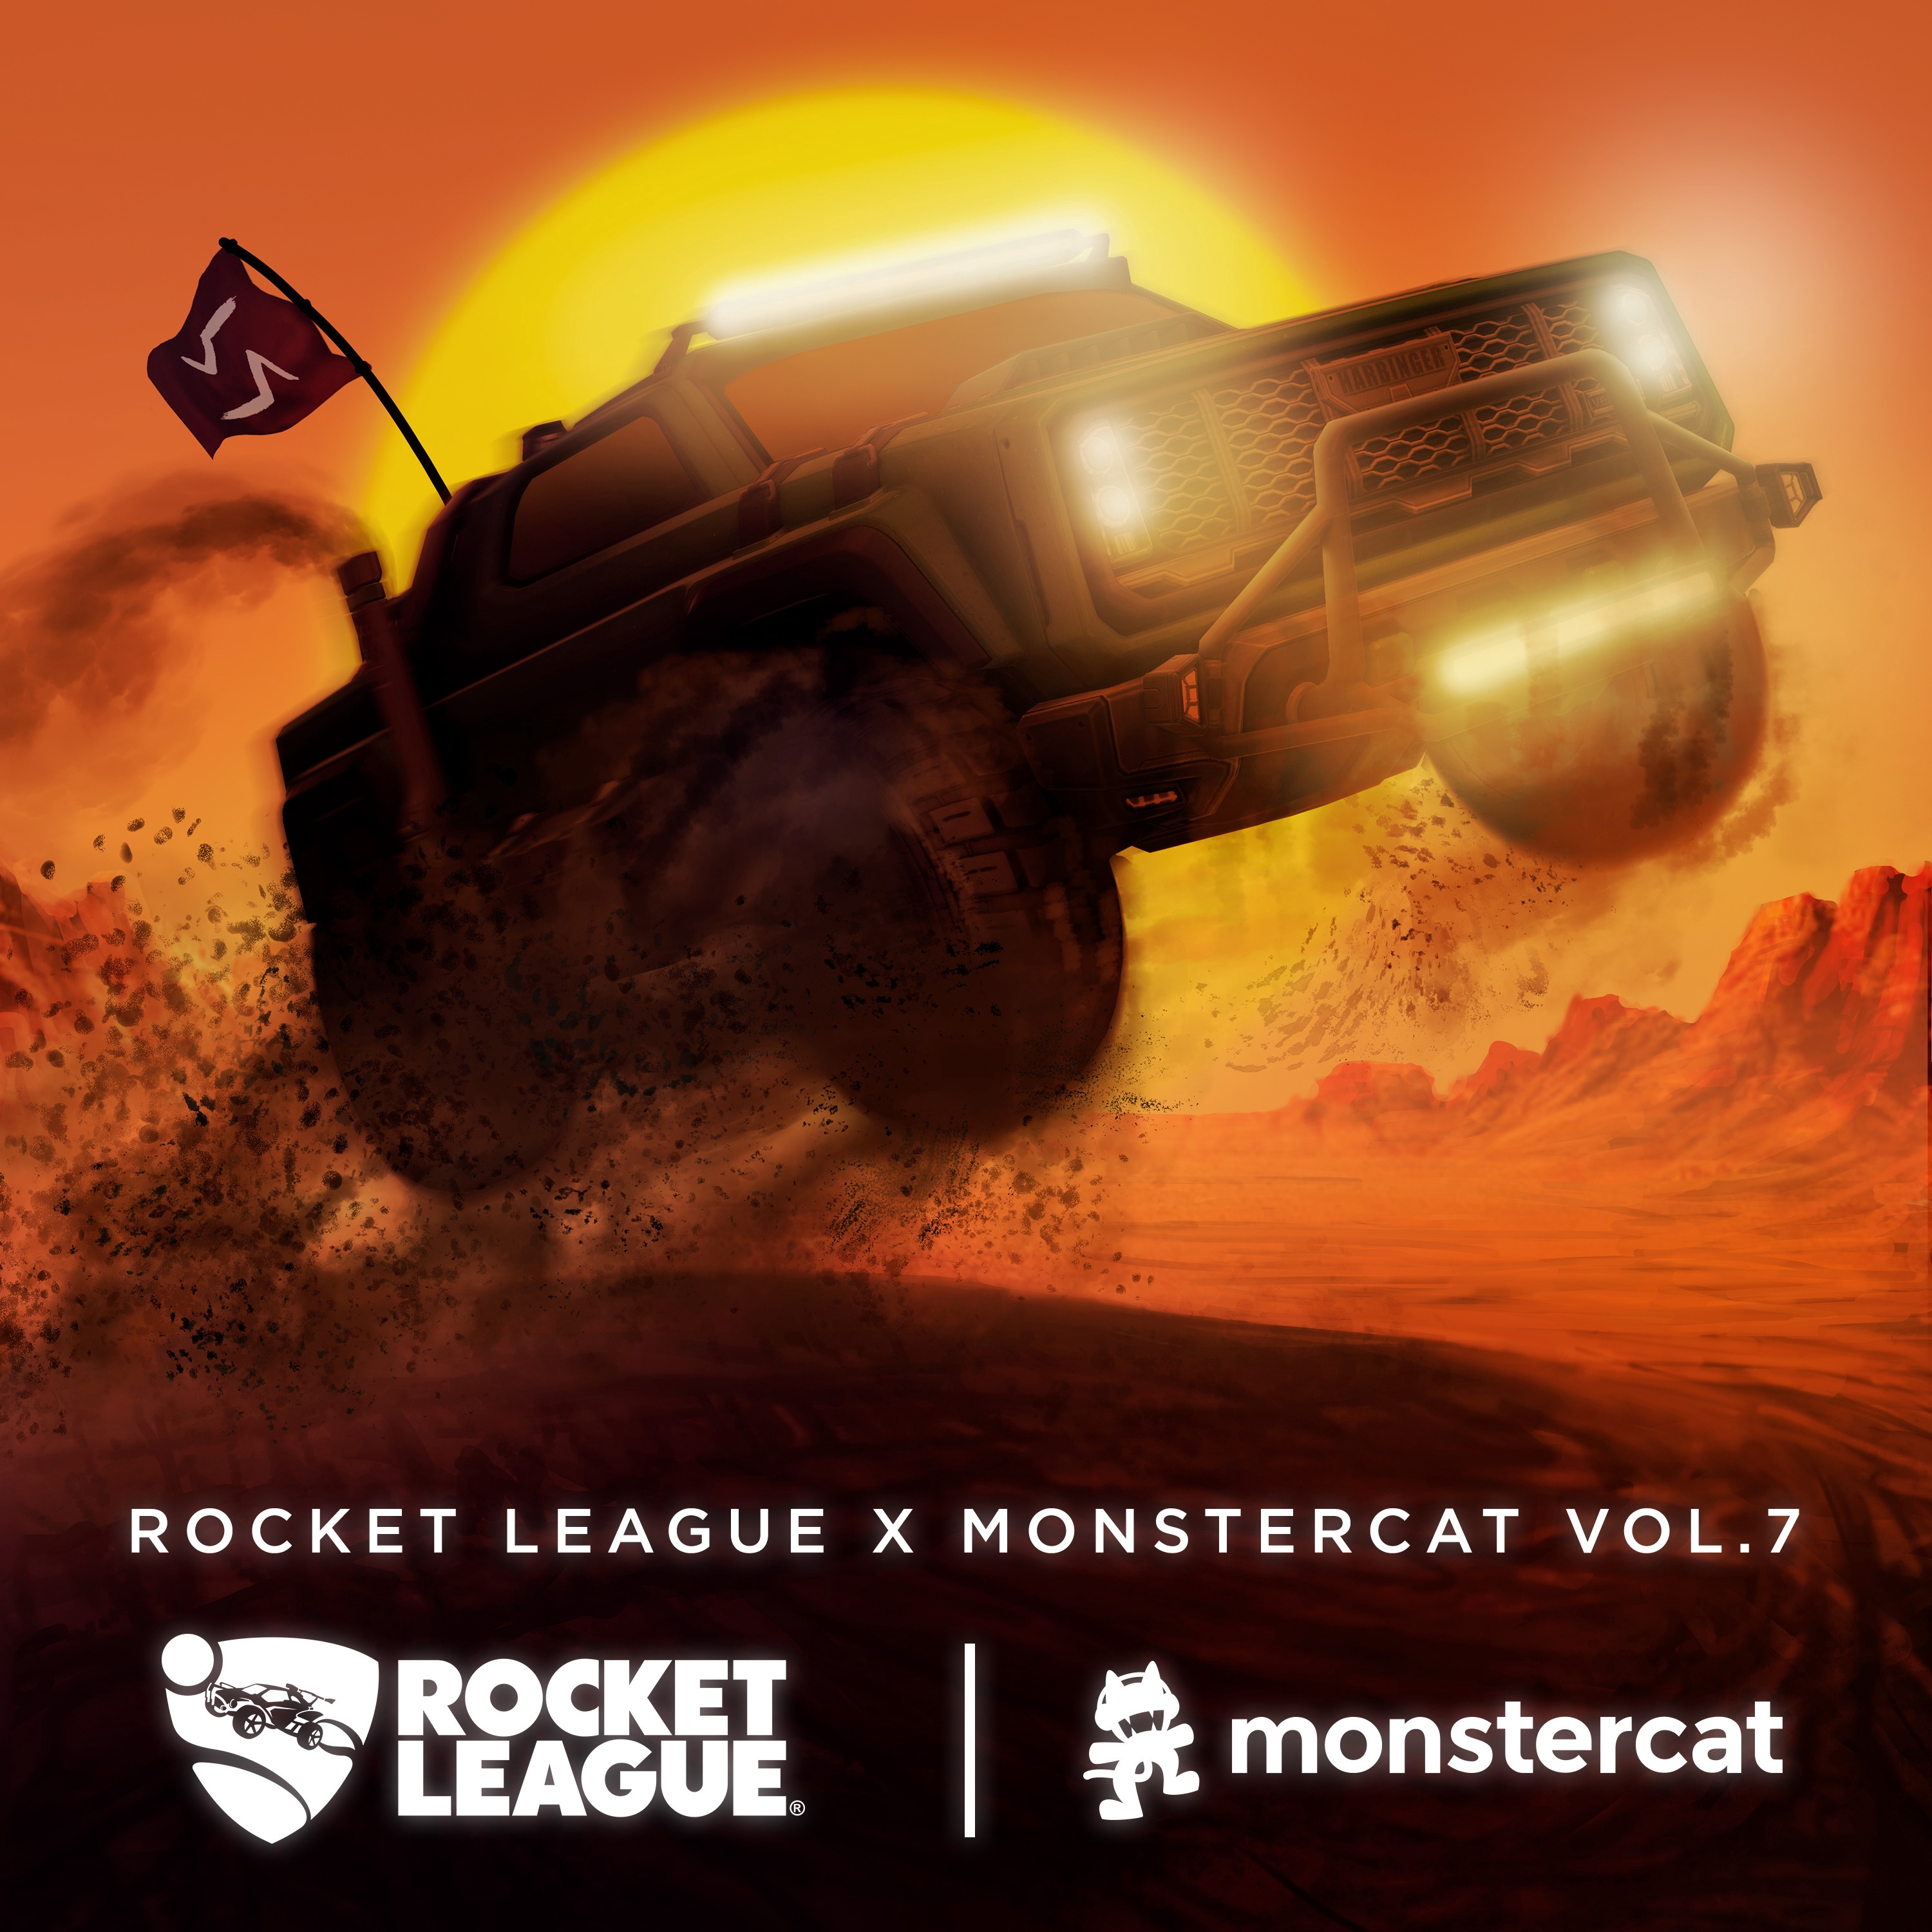 Rocket League x Monstercat Vol. 7